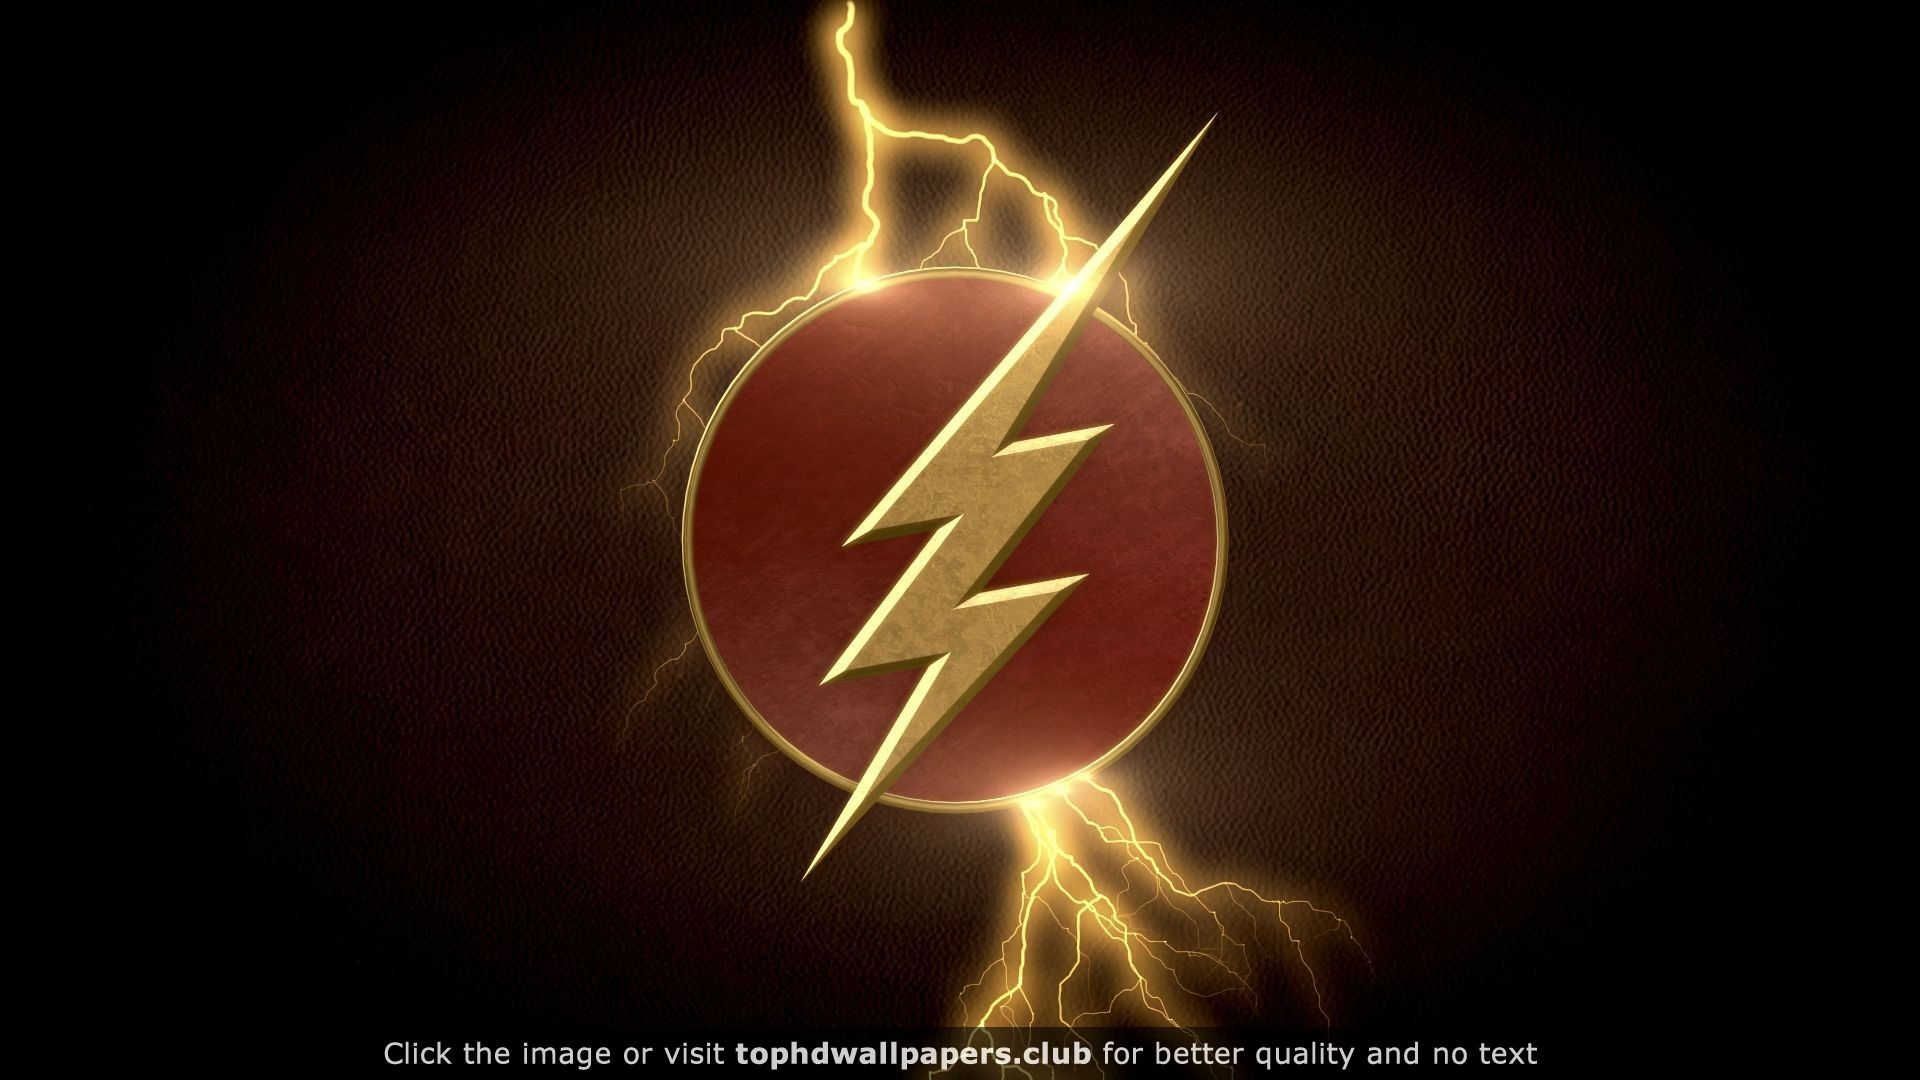 The Flash HD wallpaper for your PC, Mac or Mobile device